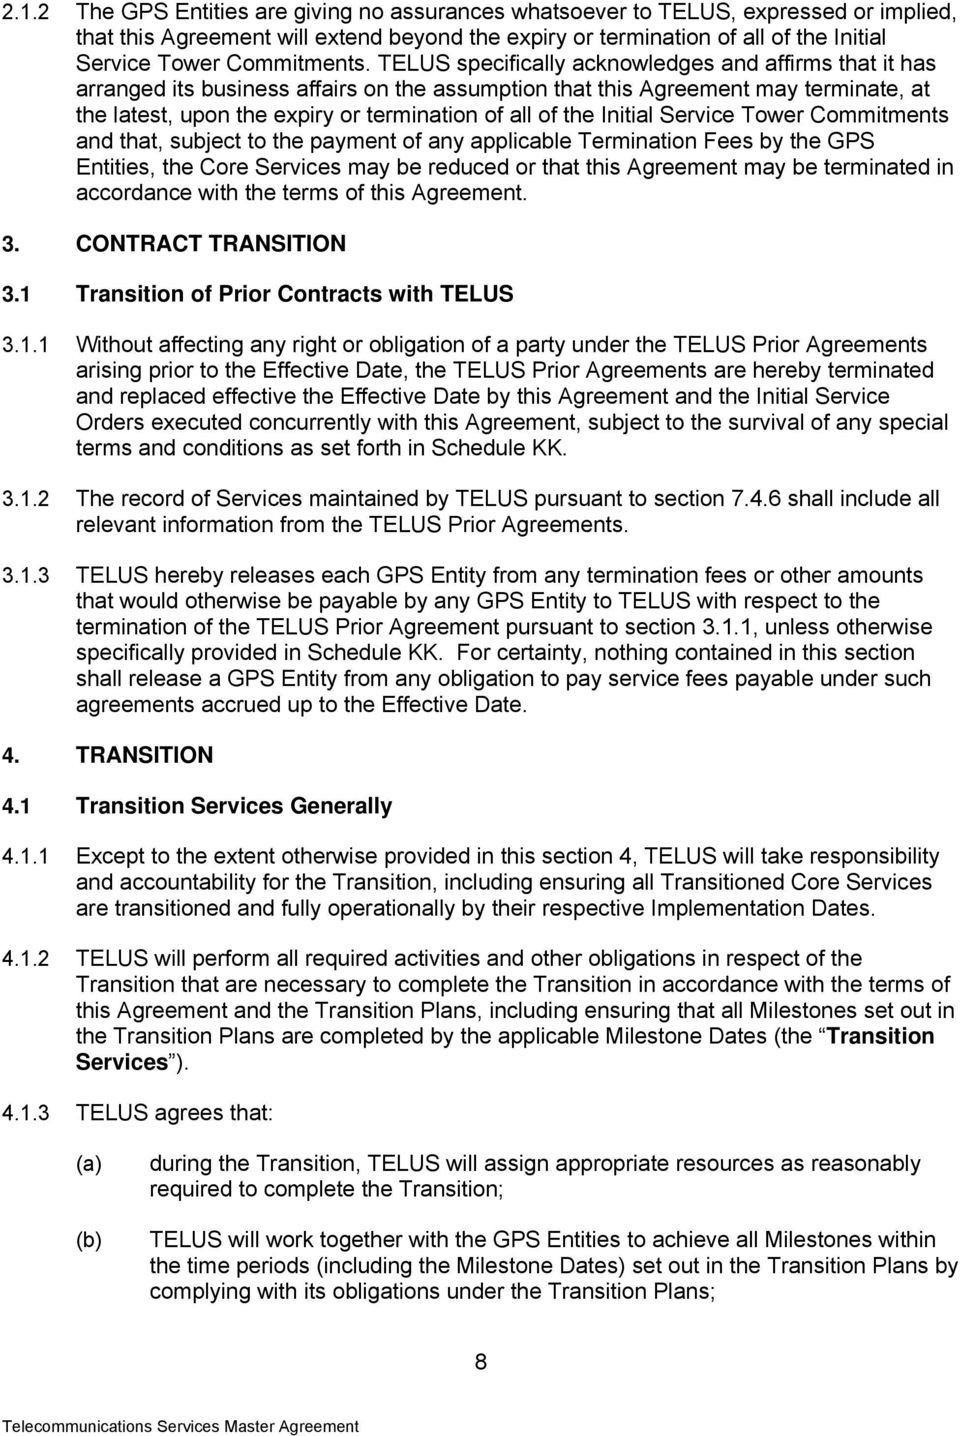 TELUS specifically acknowledges and affirms that it has arranged its business affairs on the assumption that this Agreement may terminate, at the latest, upon the expiry or termination of all of the